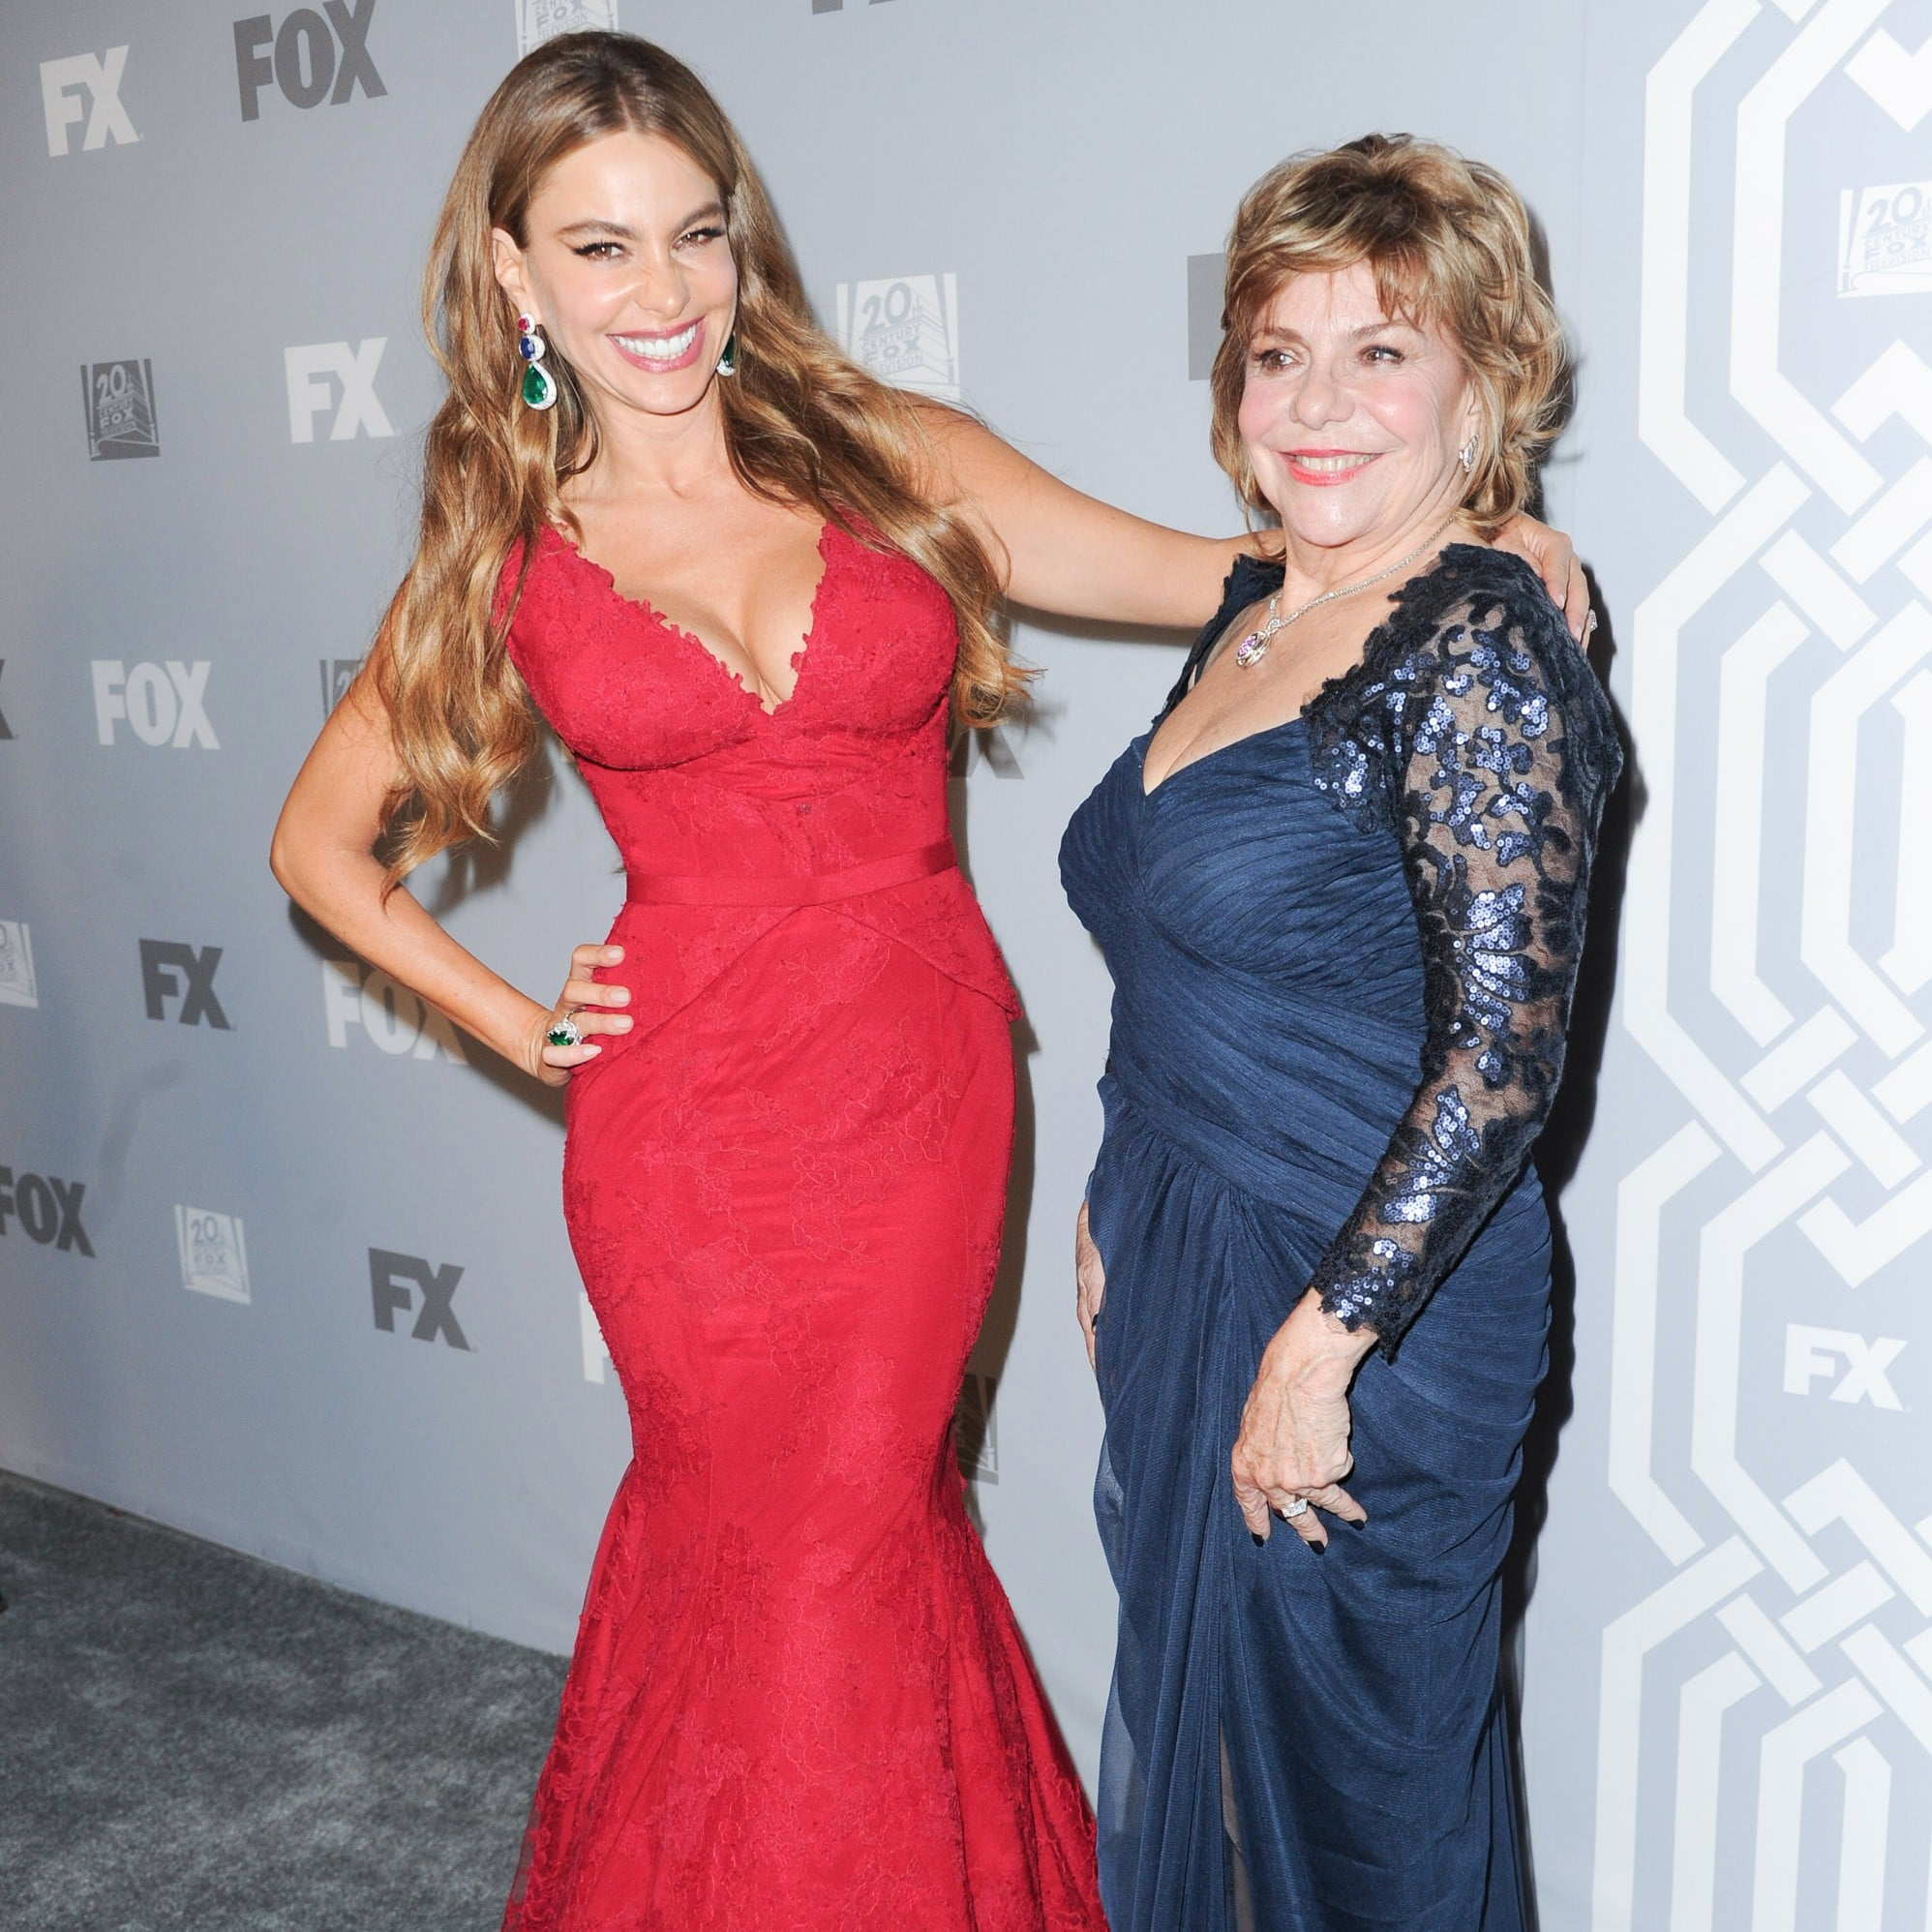 Photos Of Sofia Vergara And Her Mom Popsugar Latina